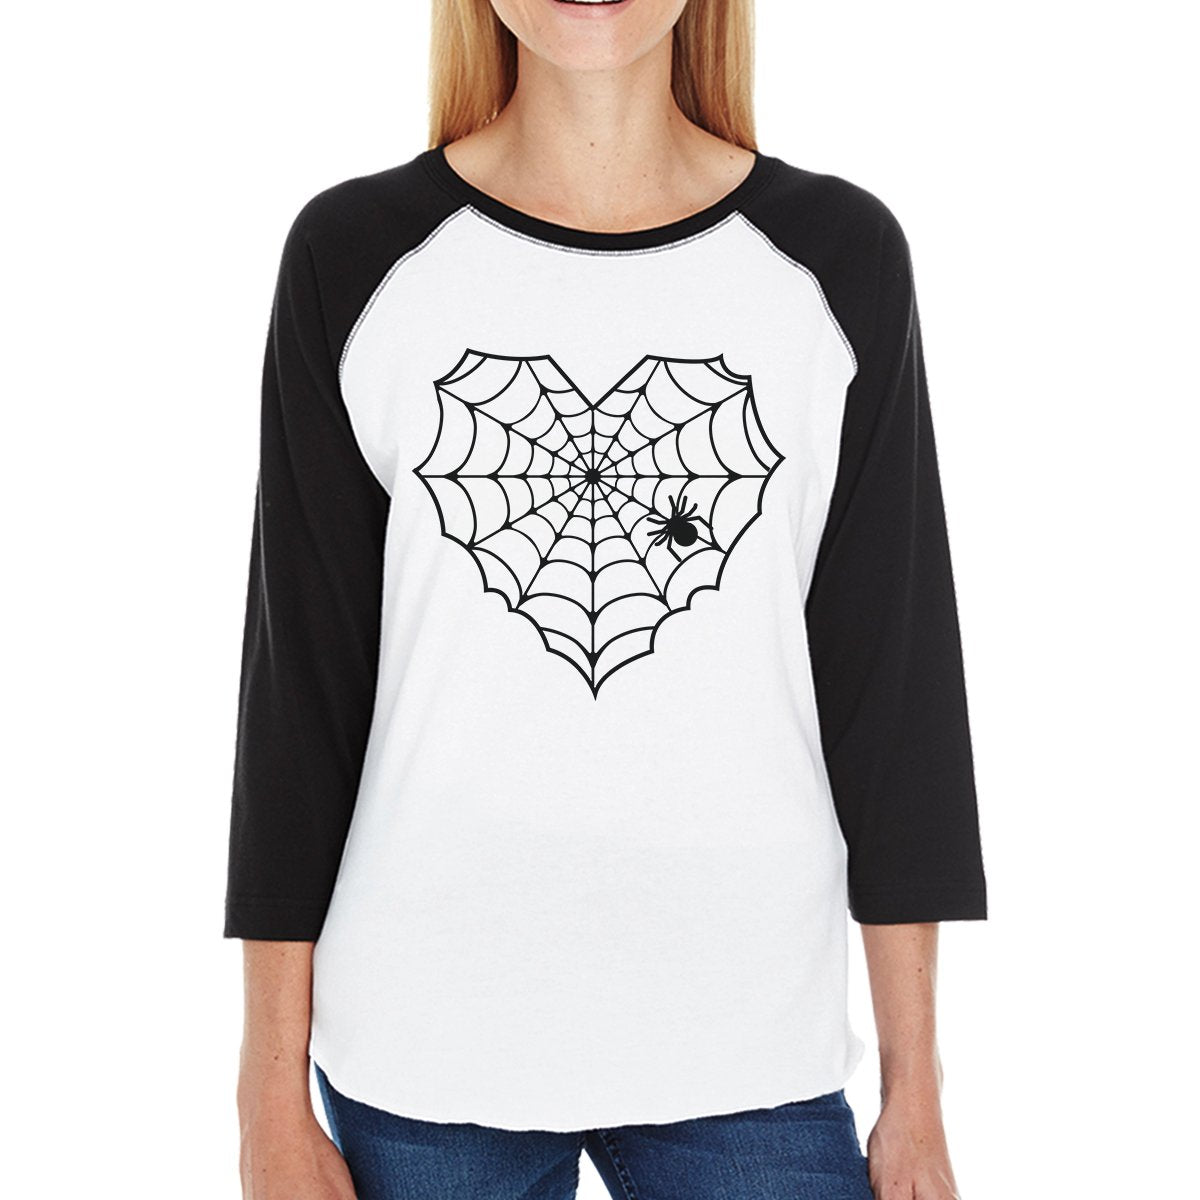 Heart Spider Web Womens Black And White Baseball Shirt